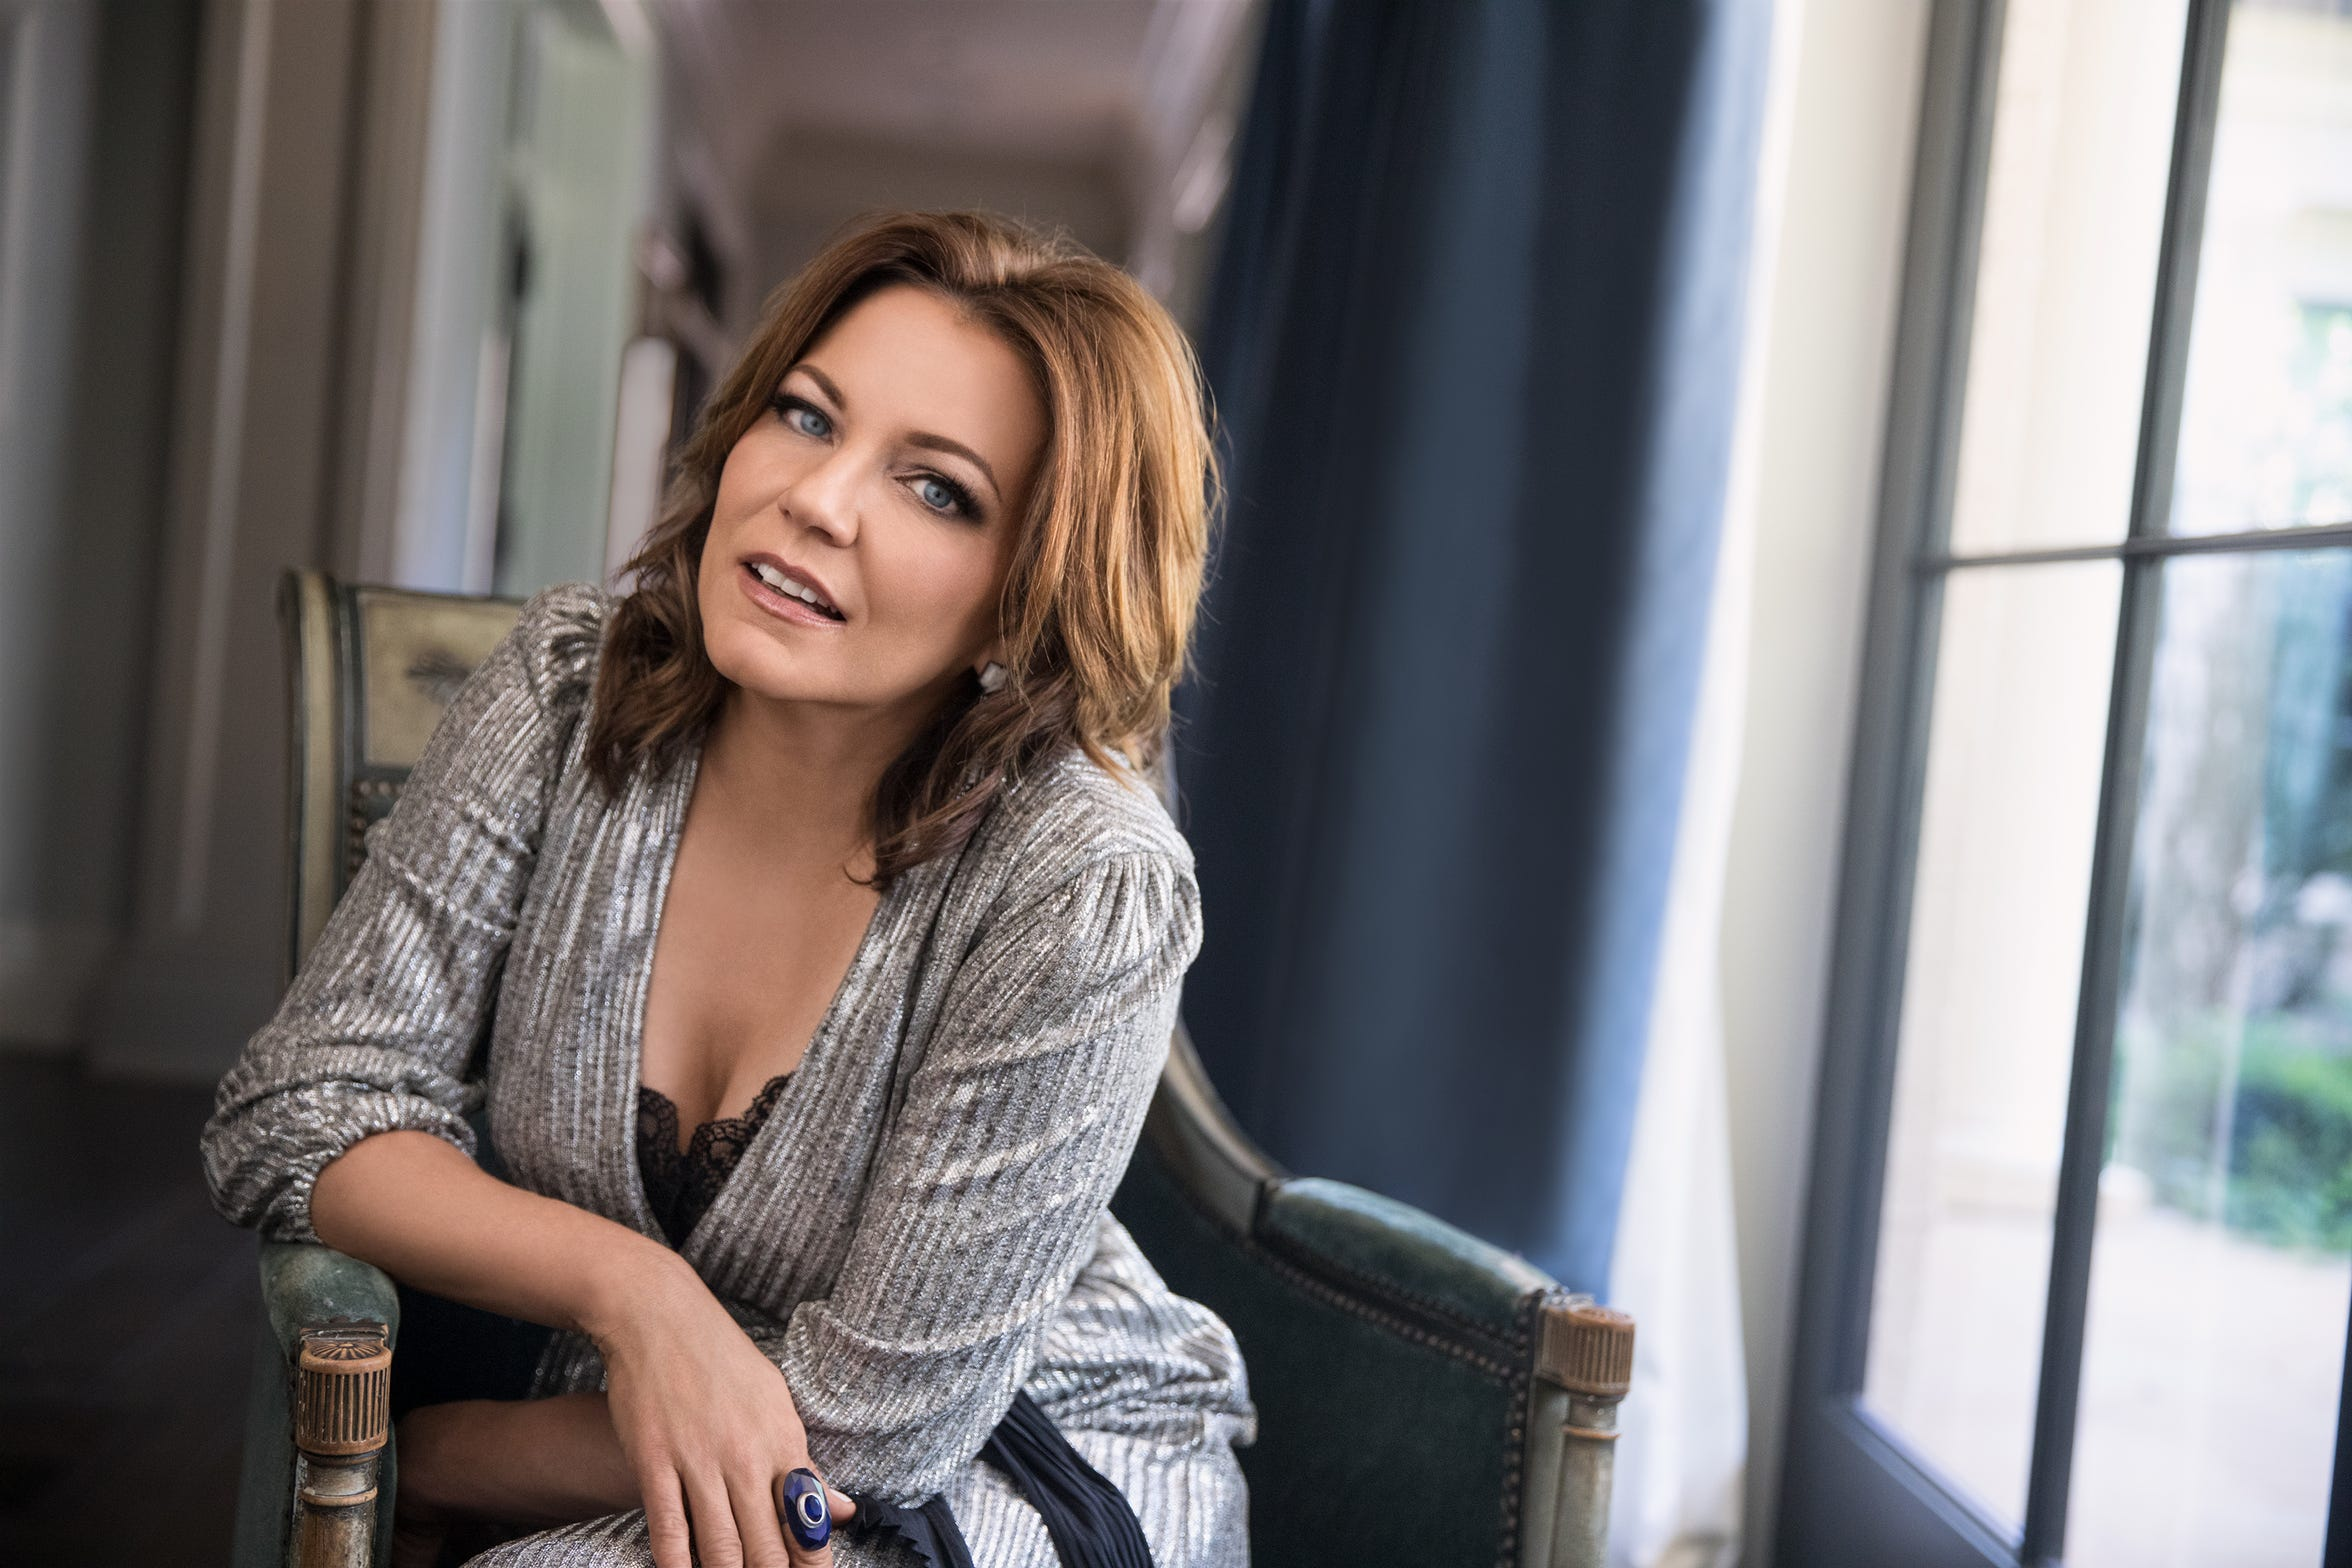 Martina McBride will make her third appearance in Abilene when she performs Thursday, Aug. 29 at the annual West Texas Rehabilitation Center summer dinner show.